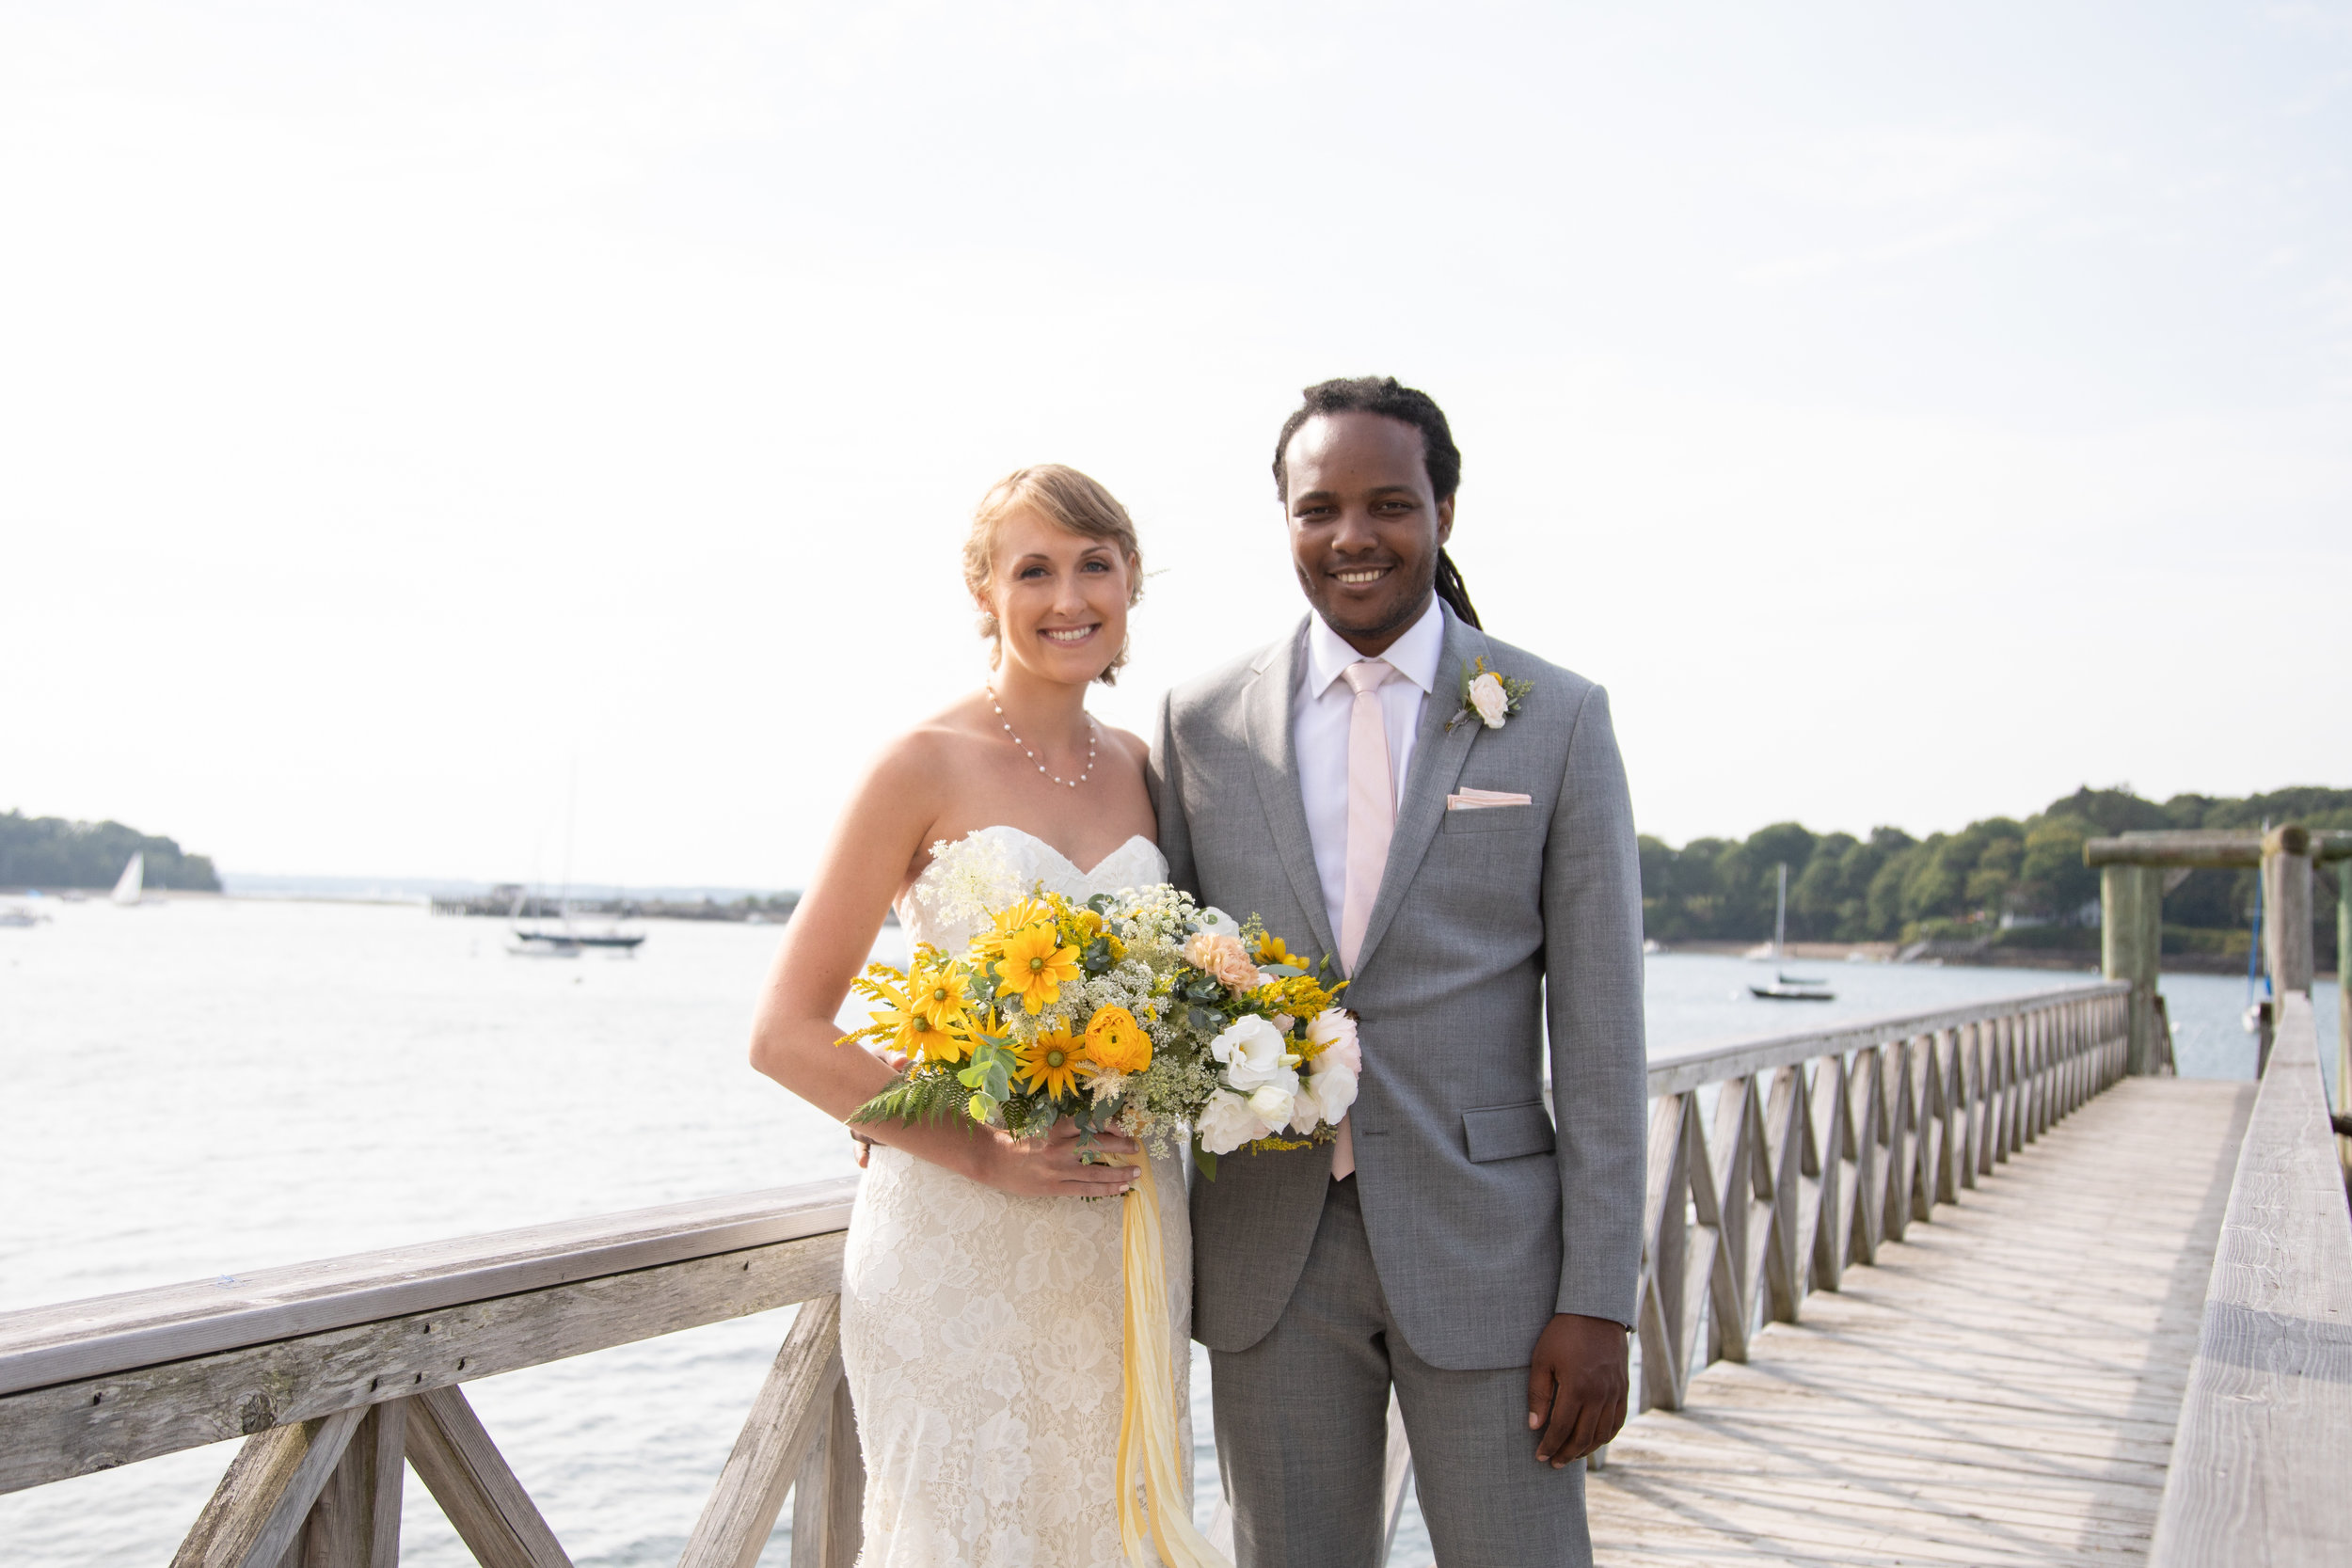 Watershed_Floral_Maine_Island_Wedding_0200.jpg